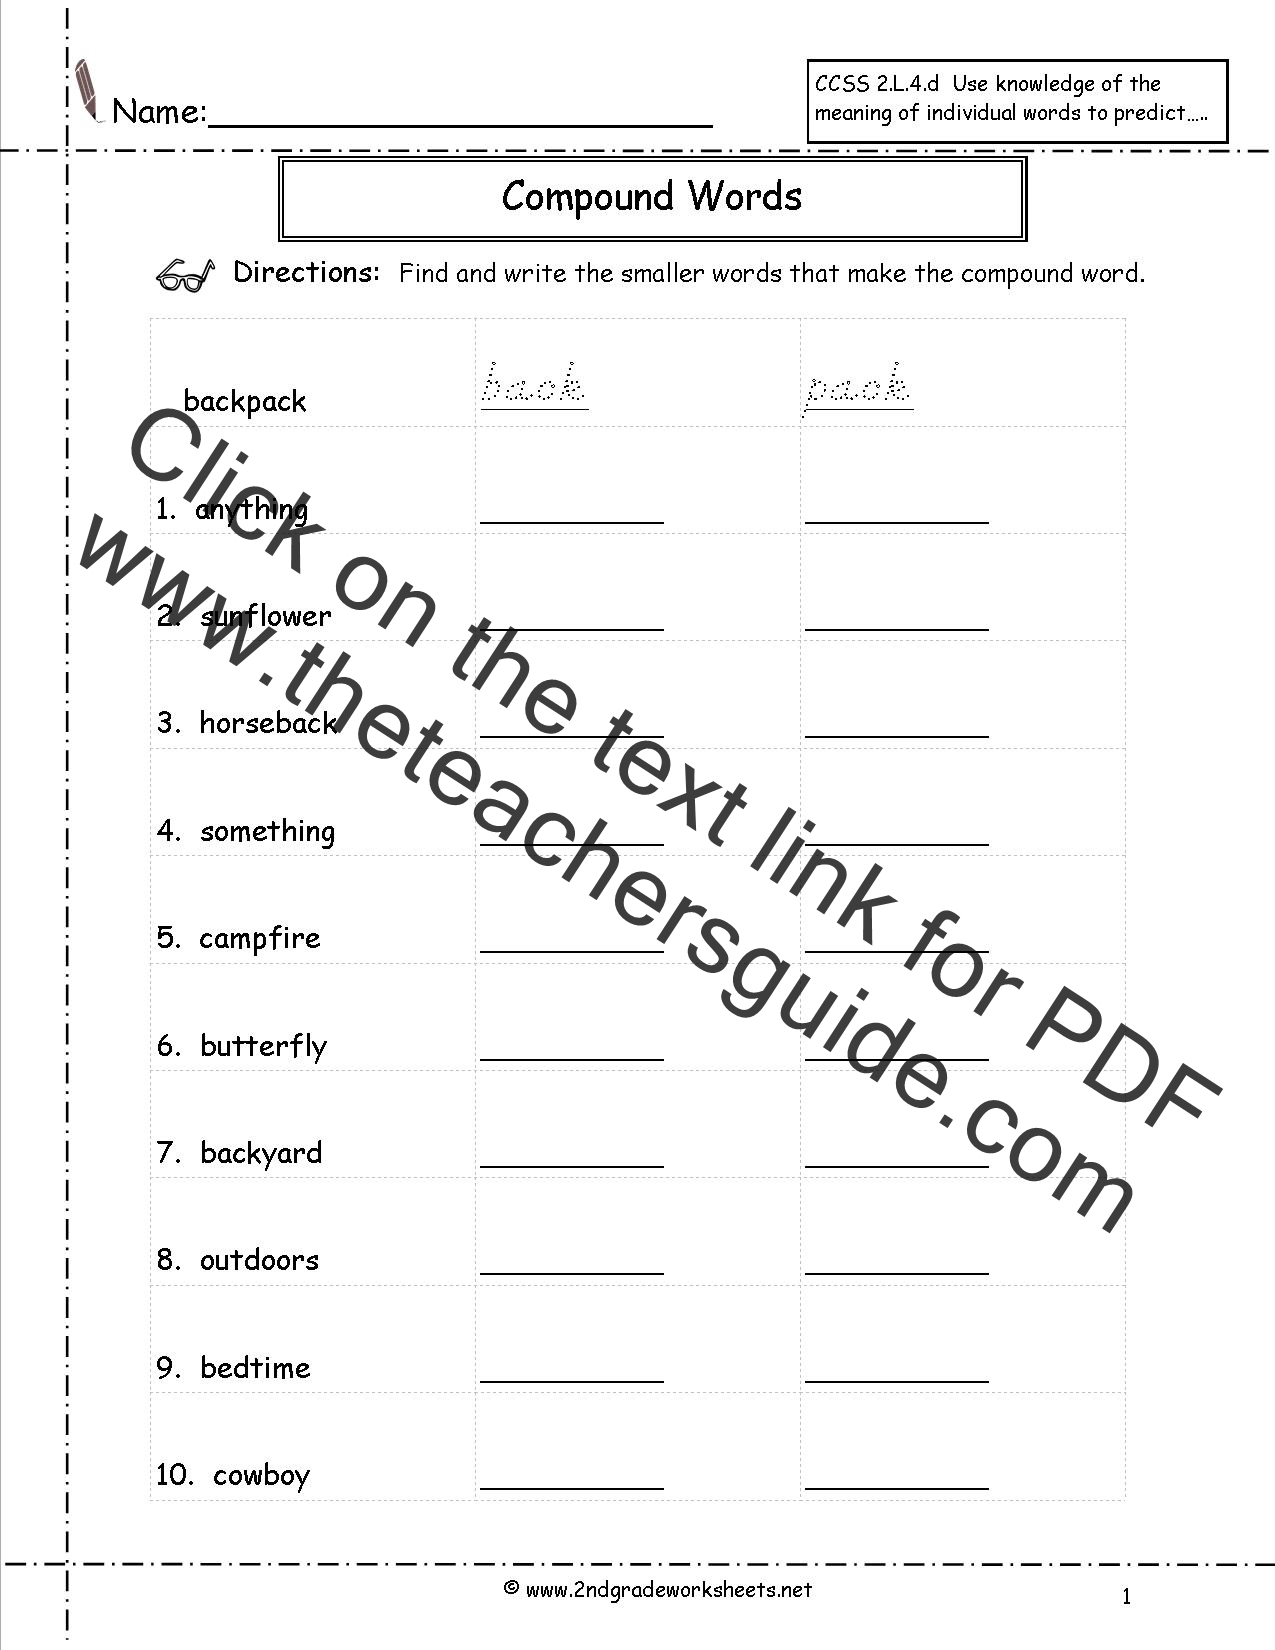 Worksheets Worksheets For 2nd Graders free languagegrammar worksheets and printouts compound words worksheets